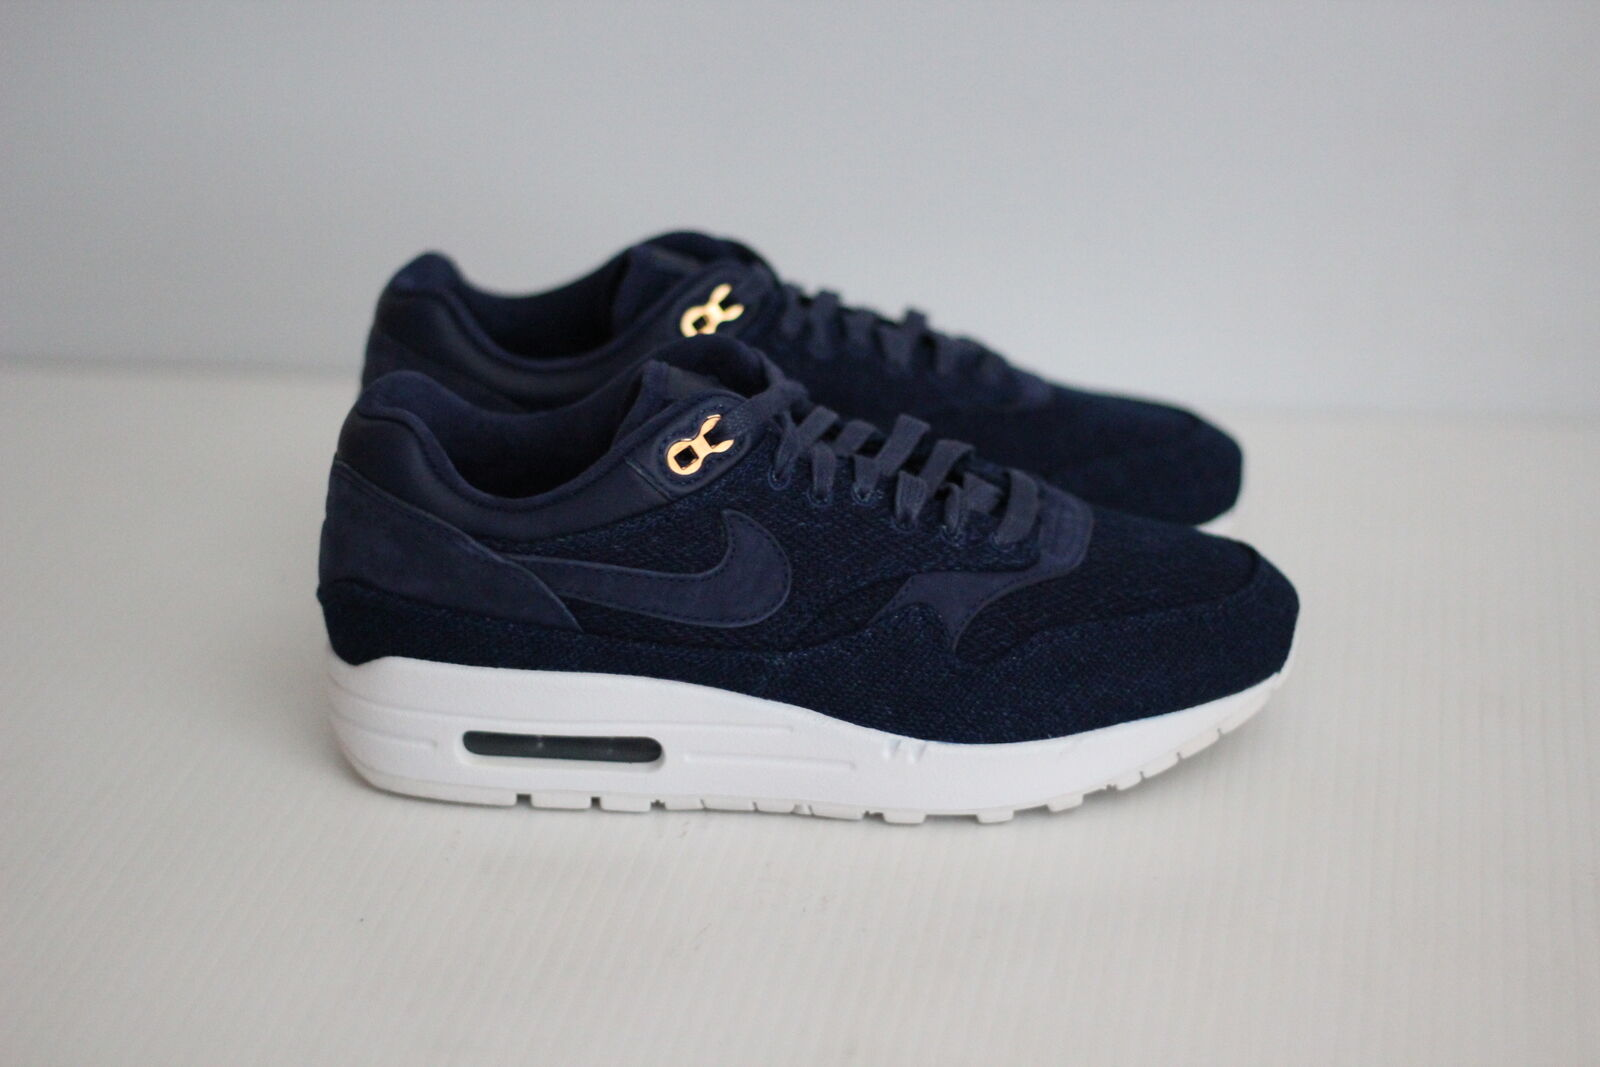 Nike Womens Air Max 1 Lux London Cloth - Binary Blue / White - 8 US  (B87)